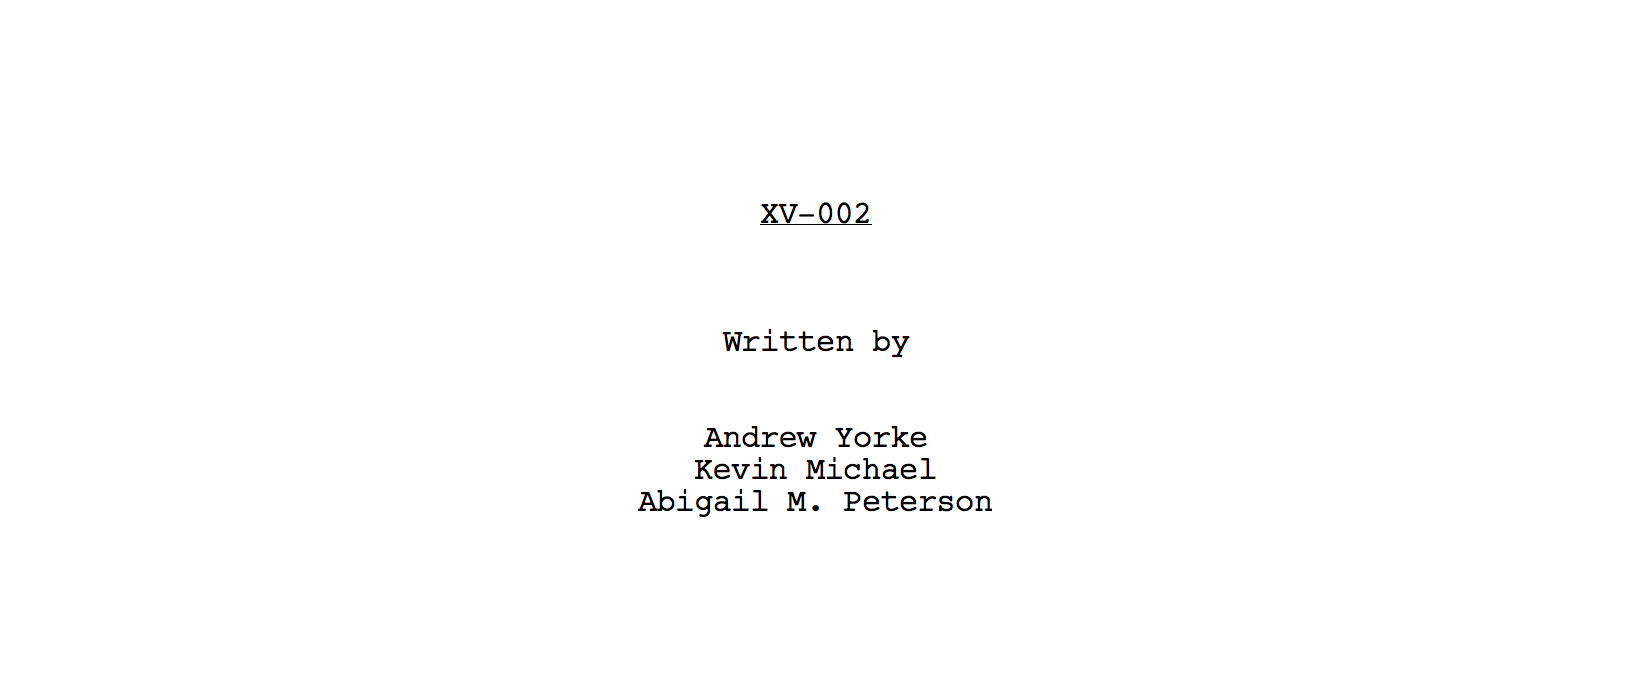 XV-002, written by Andrew Yorke, Kevin Michael, and Abigail M. Peterson